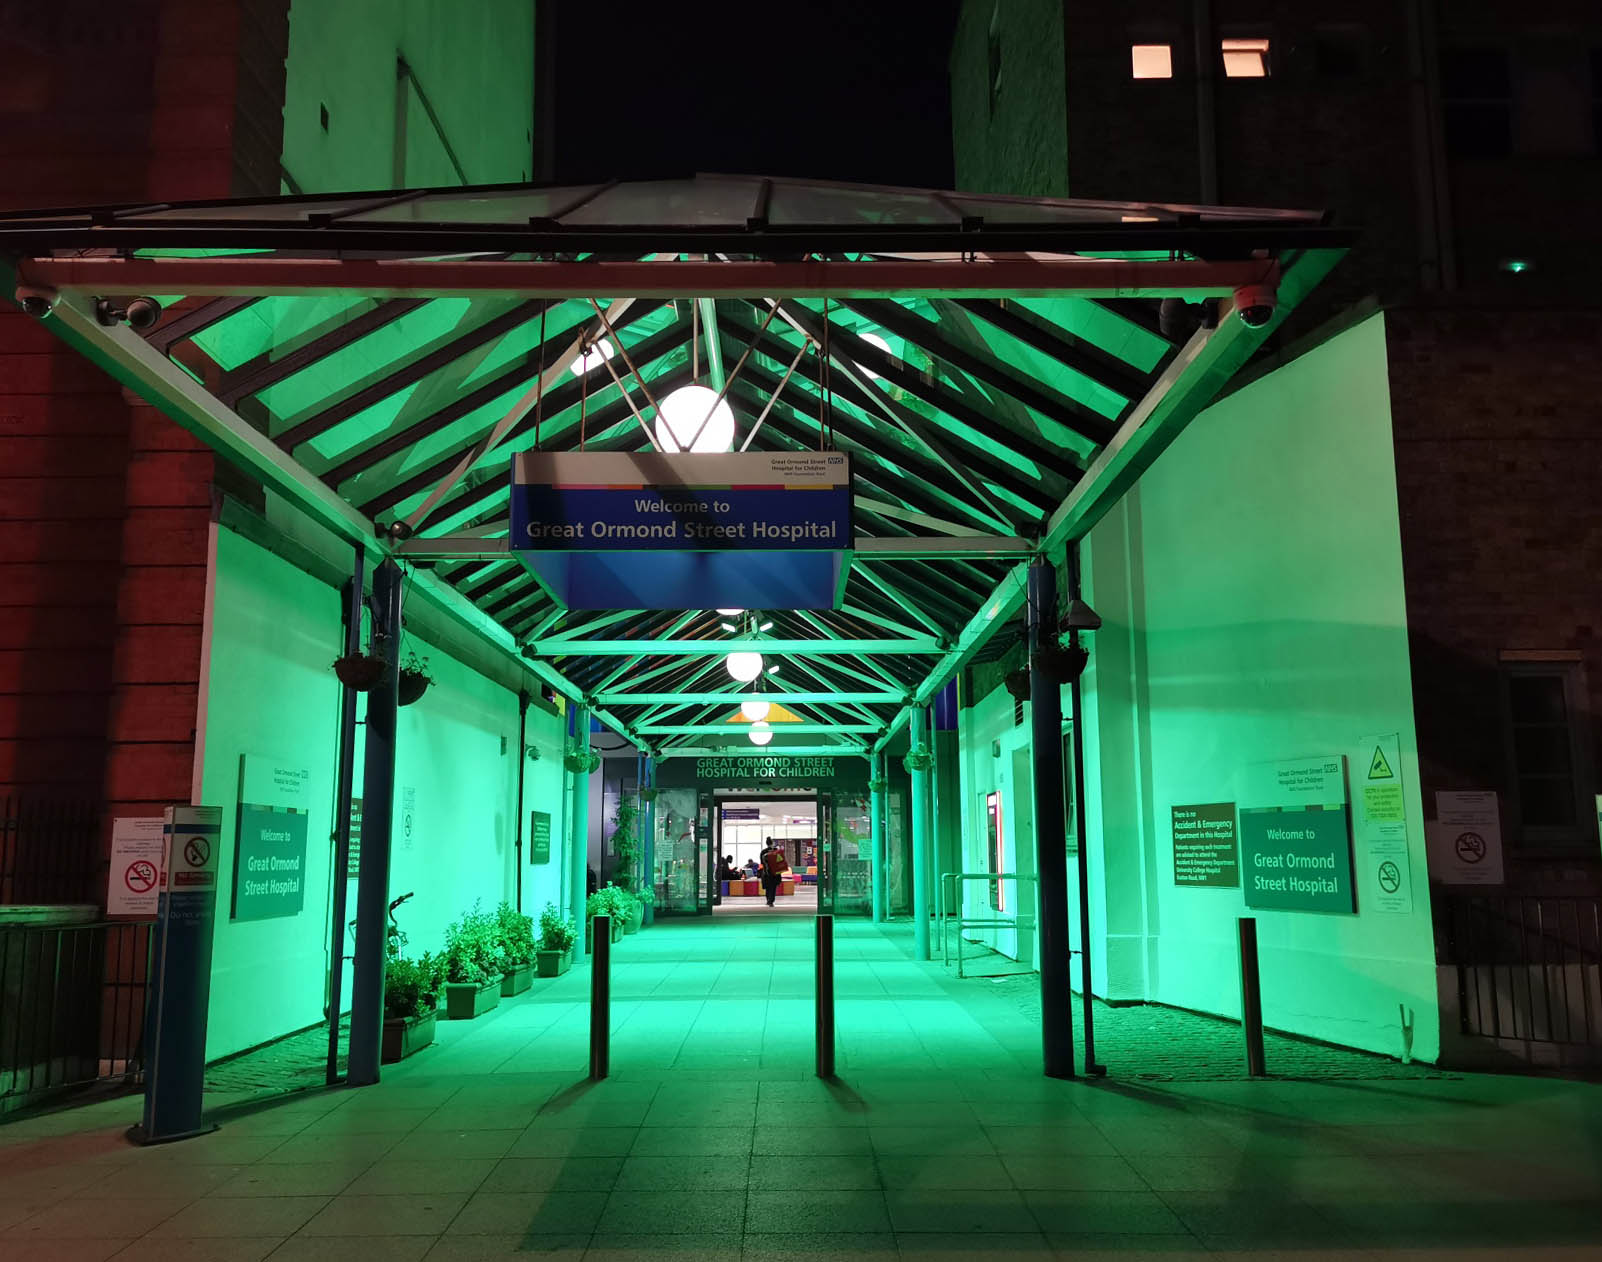 Great Ormond Street Hospital Green